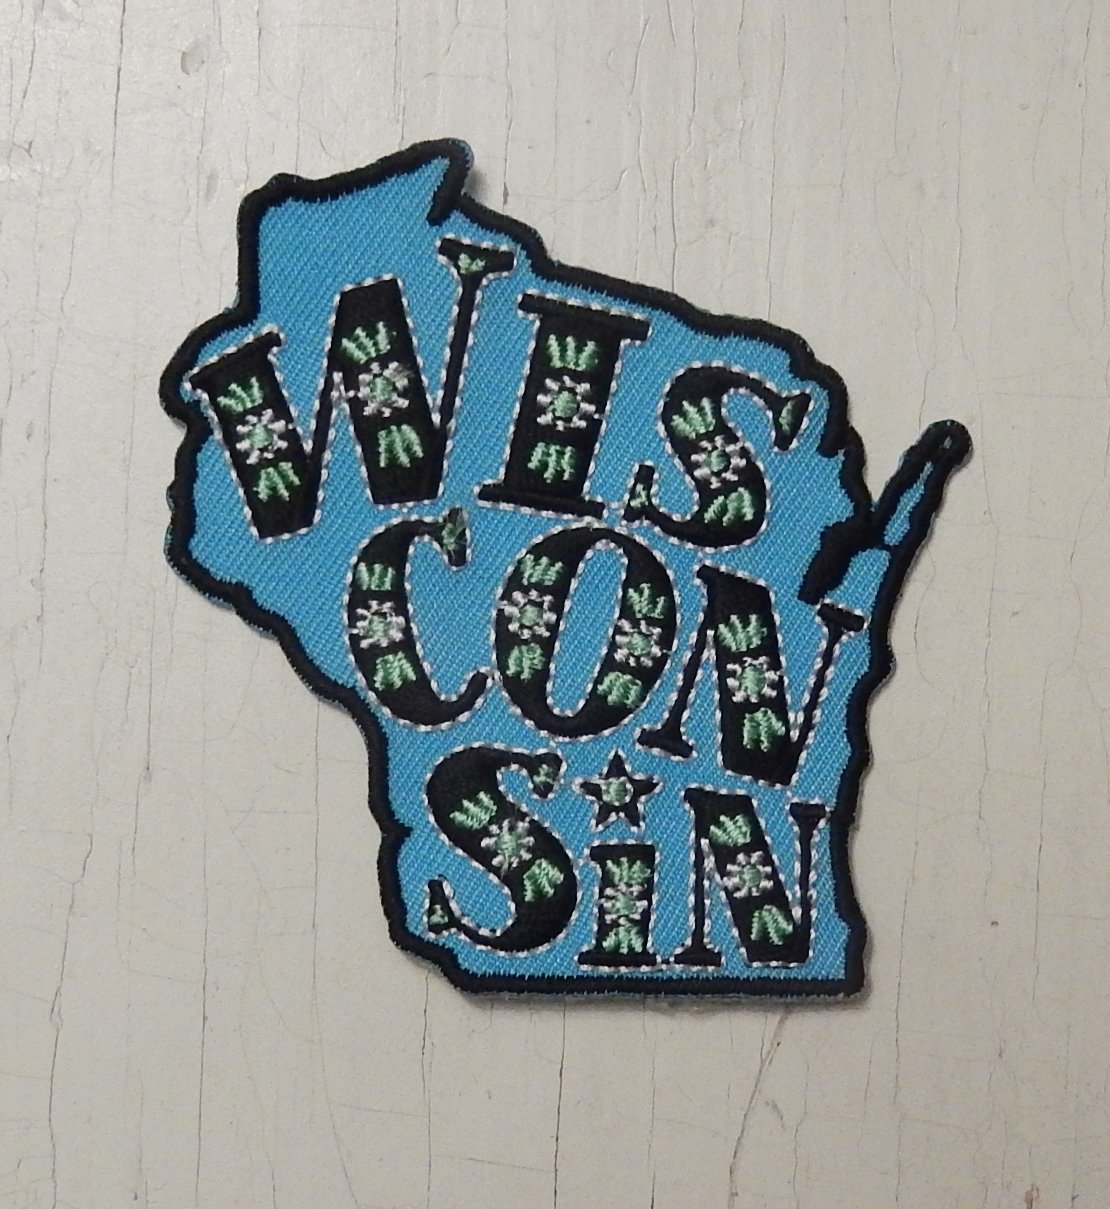 Wisco floral patch